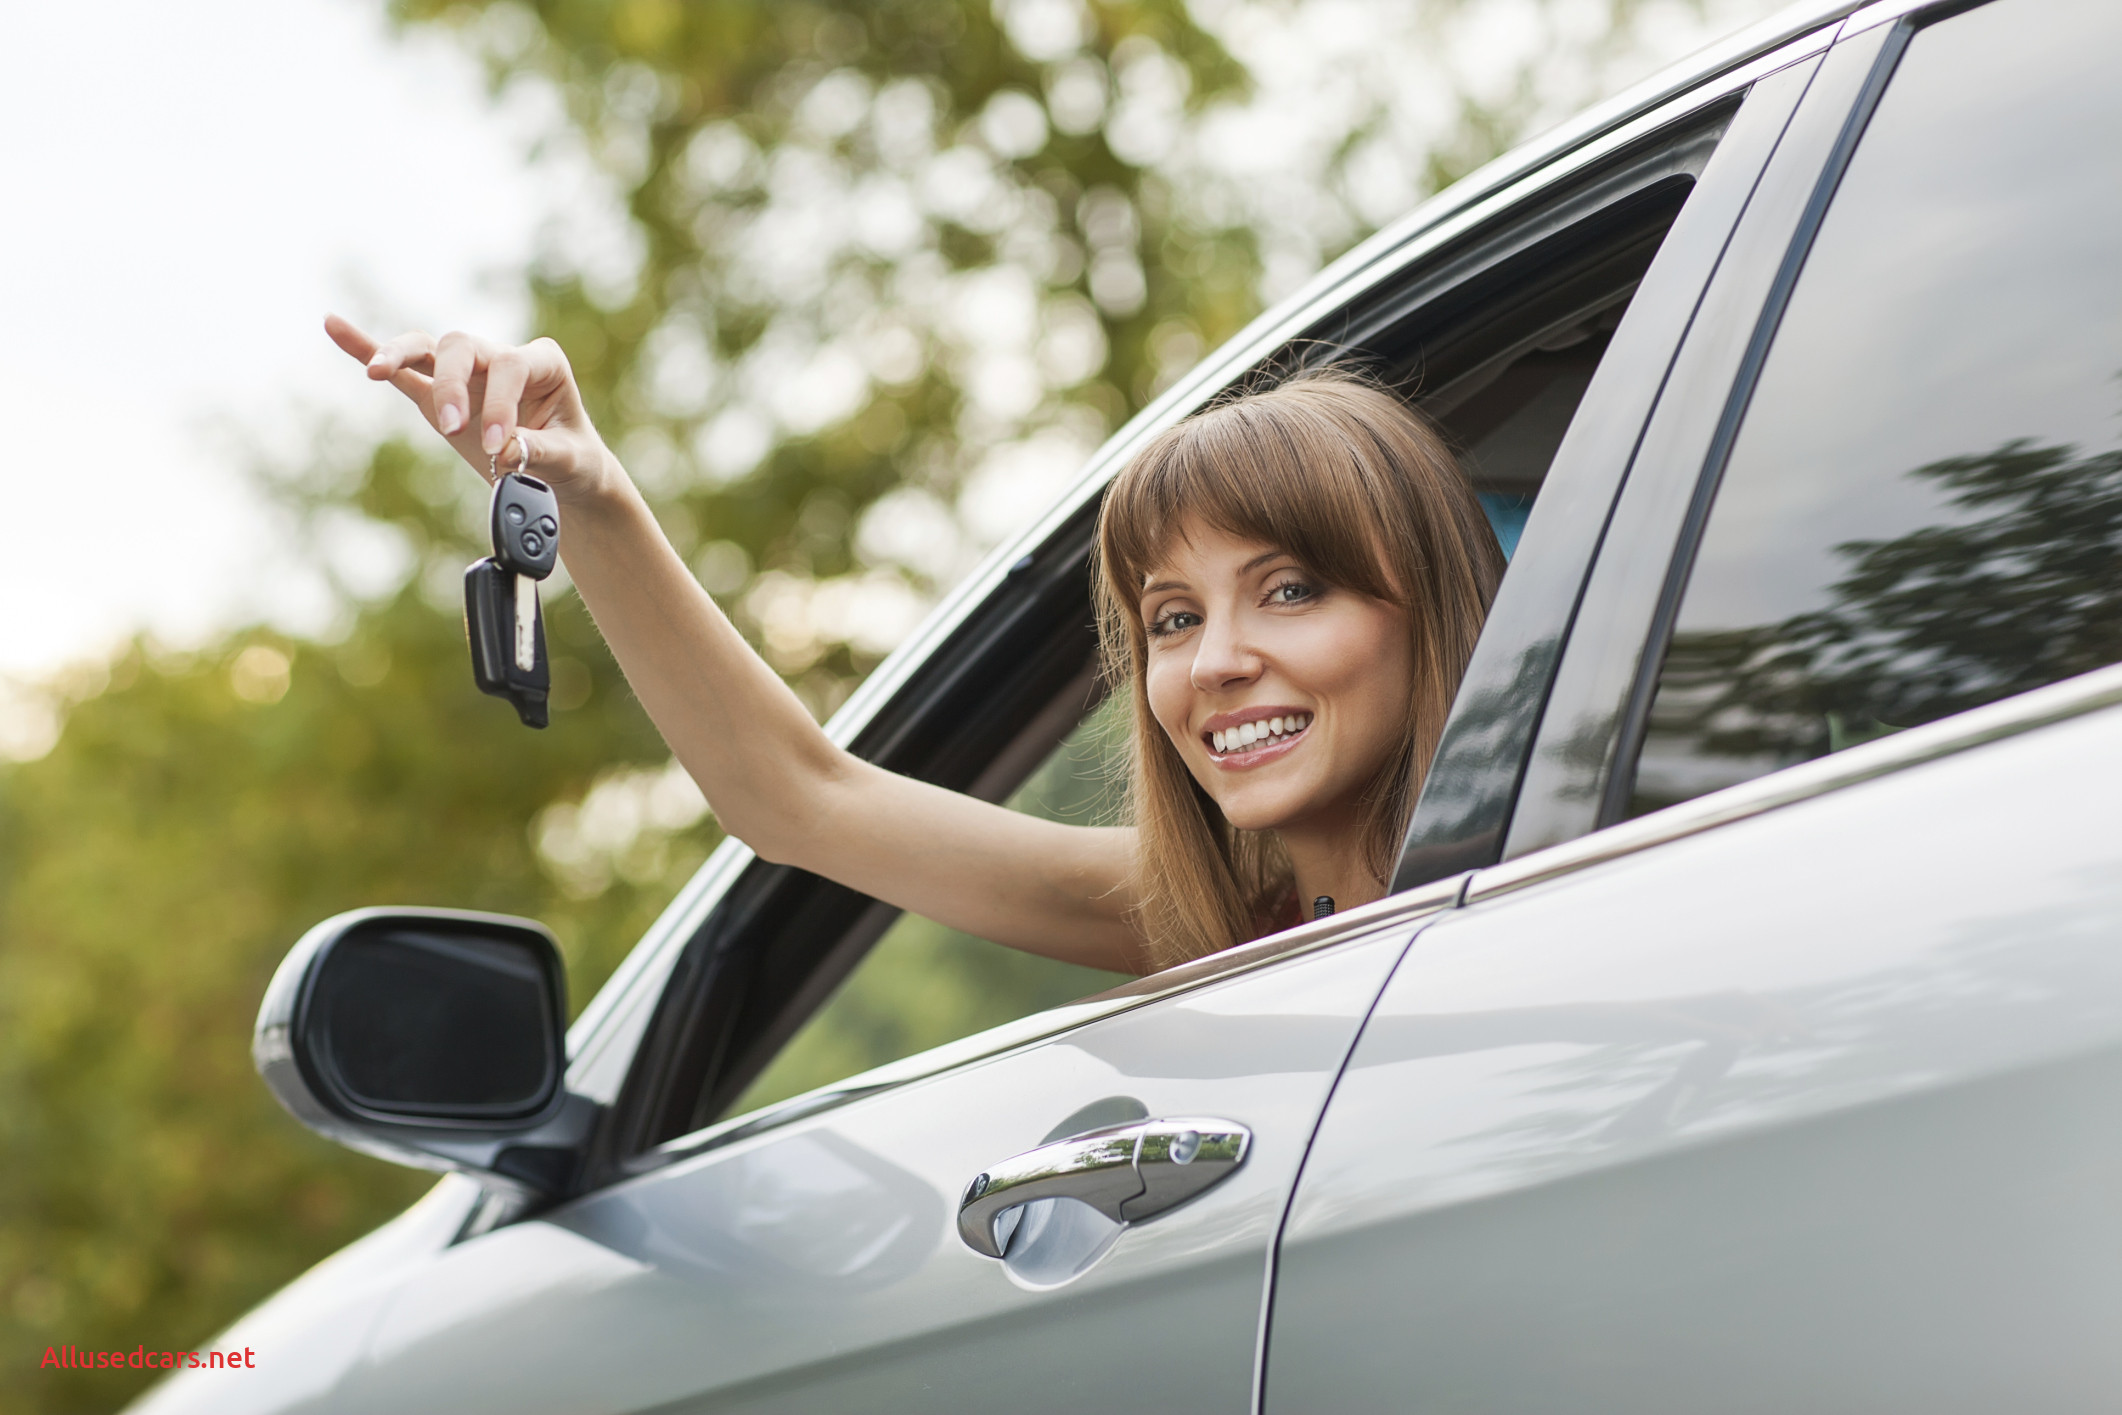 Can You Trade In A Leased Car Early Inspirational Can I Buy My Car before the Lease is Up